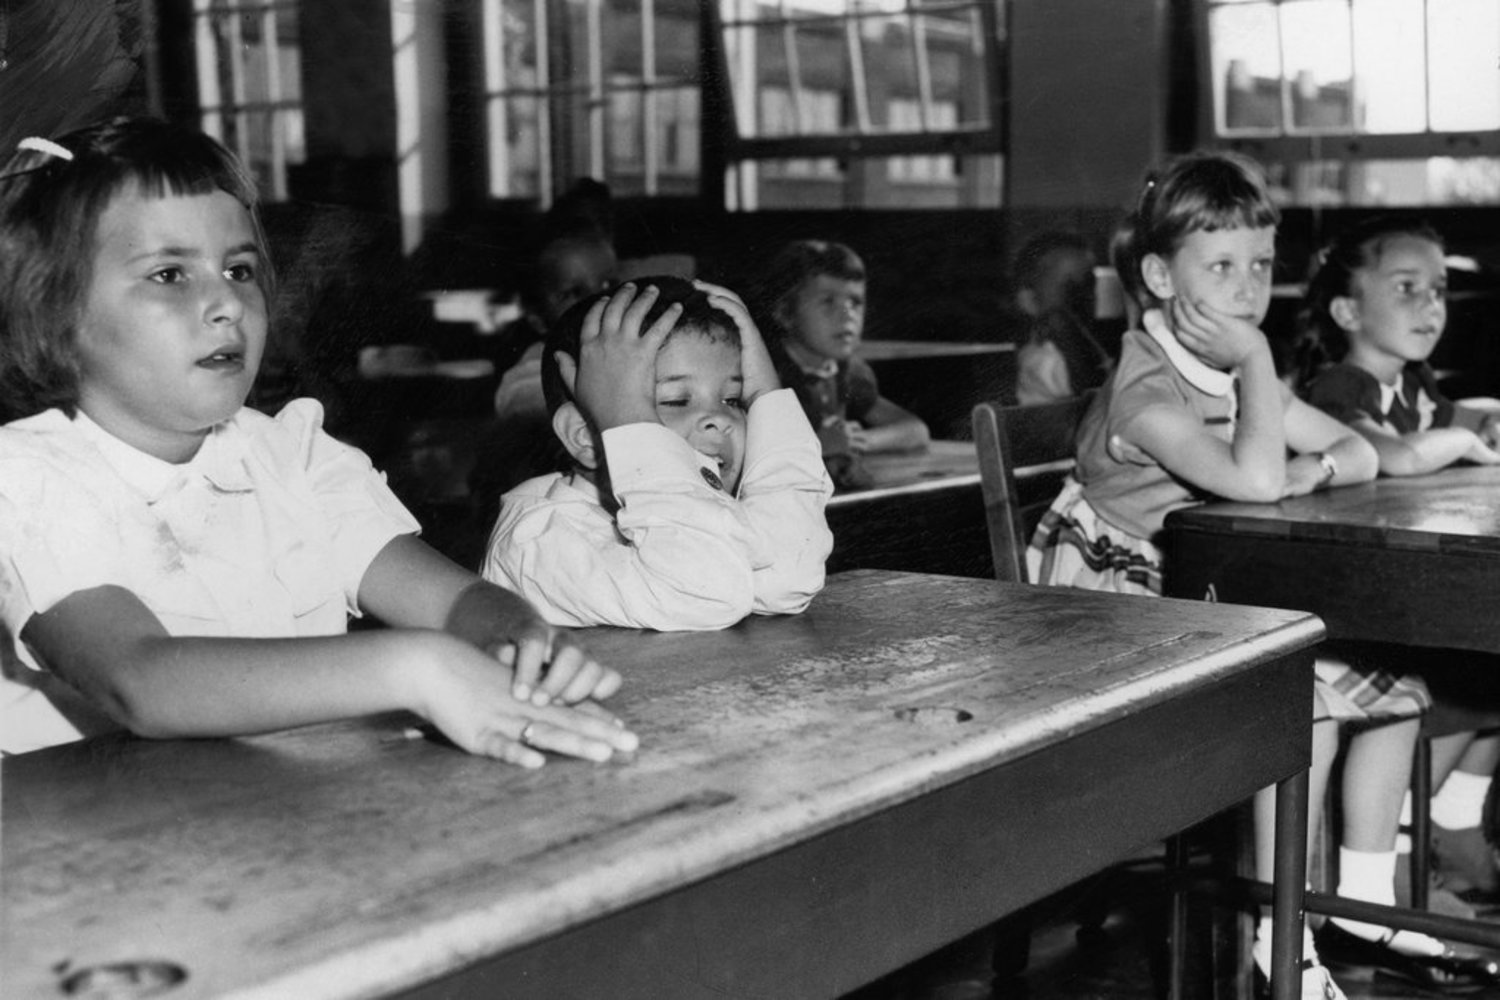 1950s - September 1957: The first day elicits varied reactions from first graders.